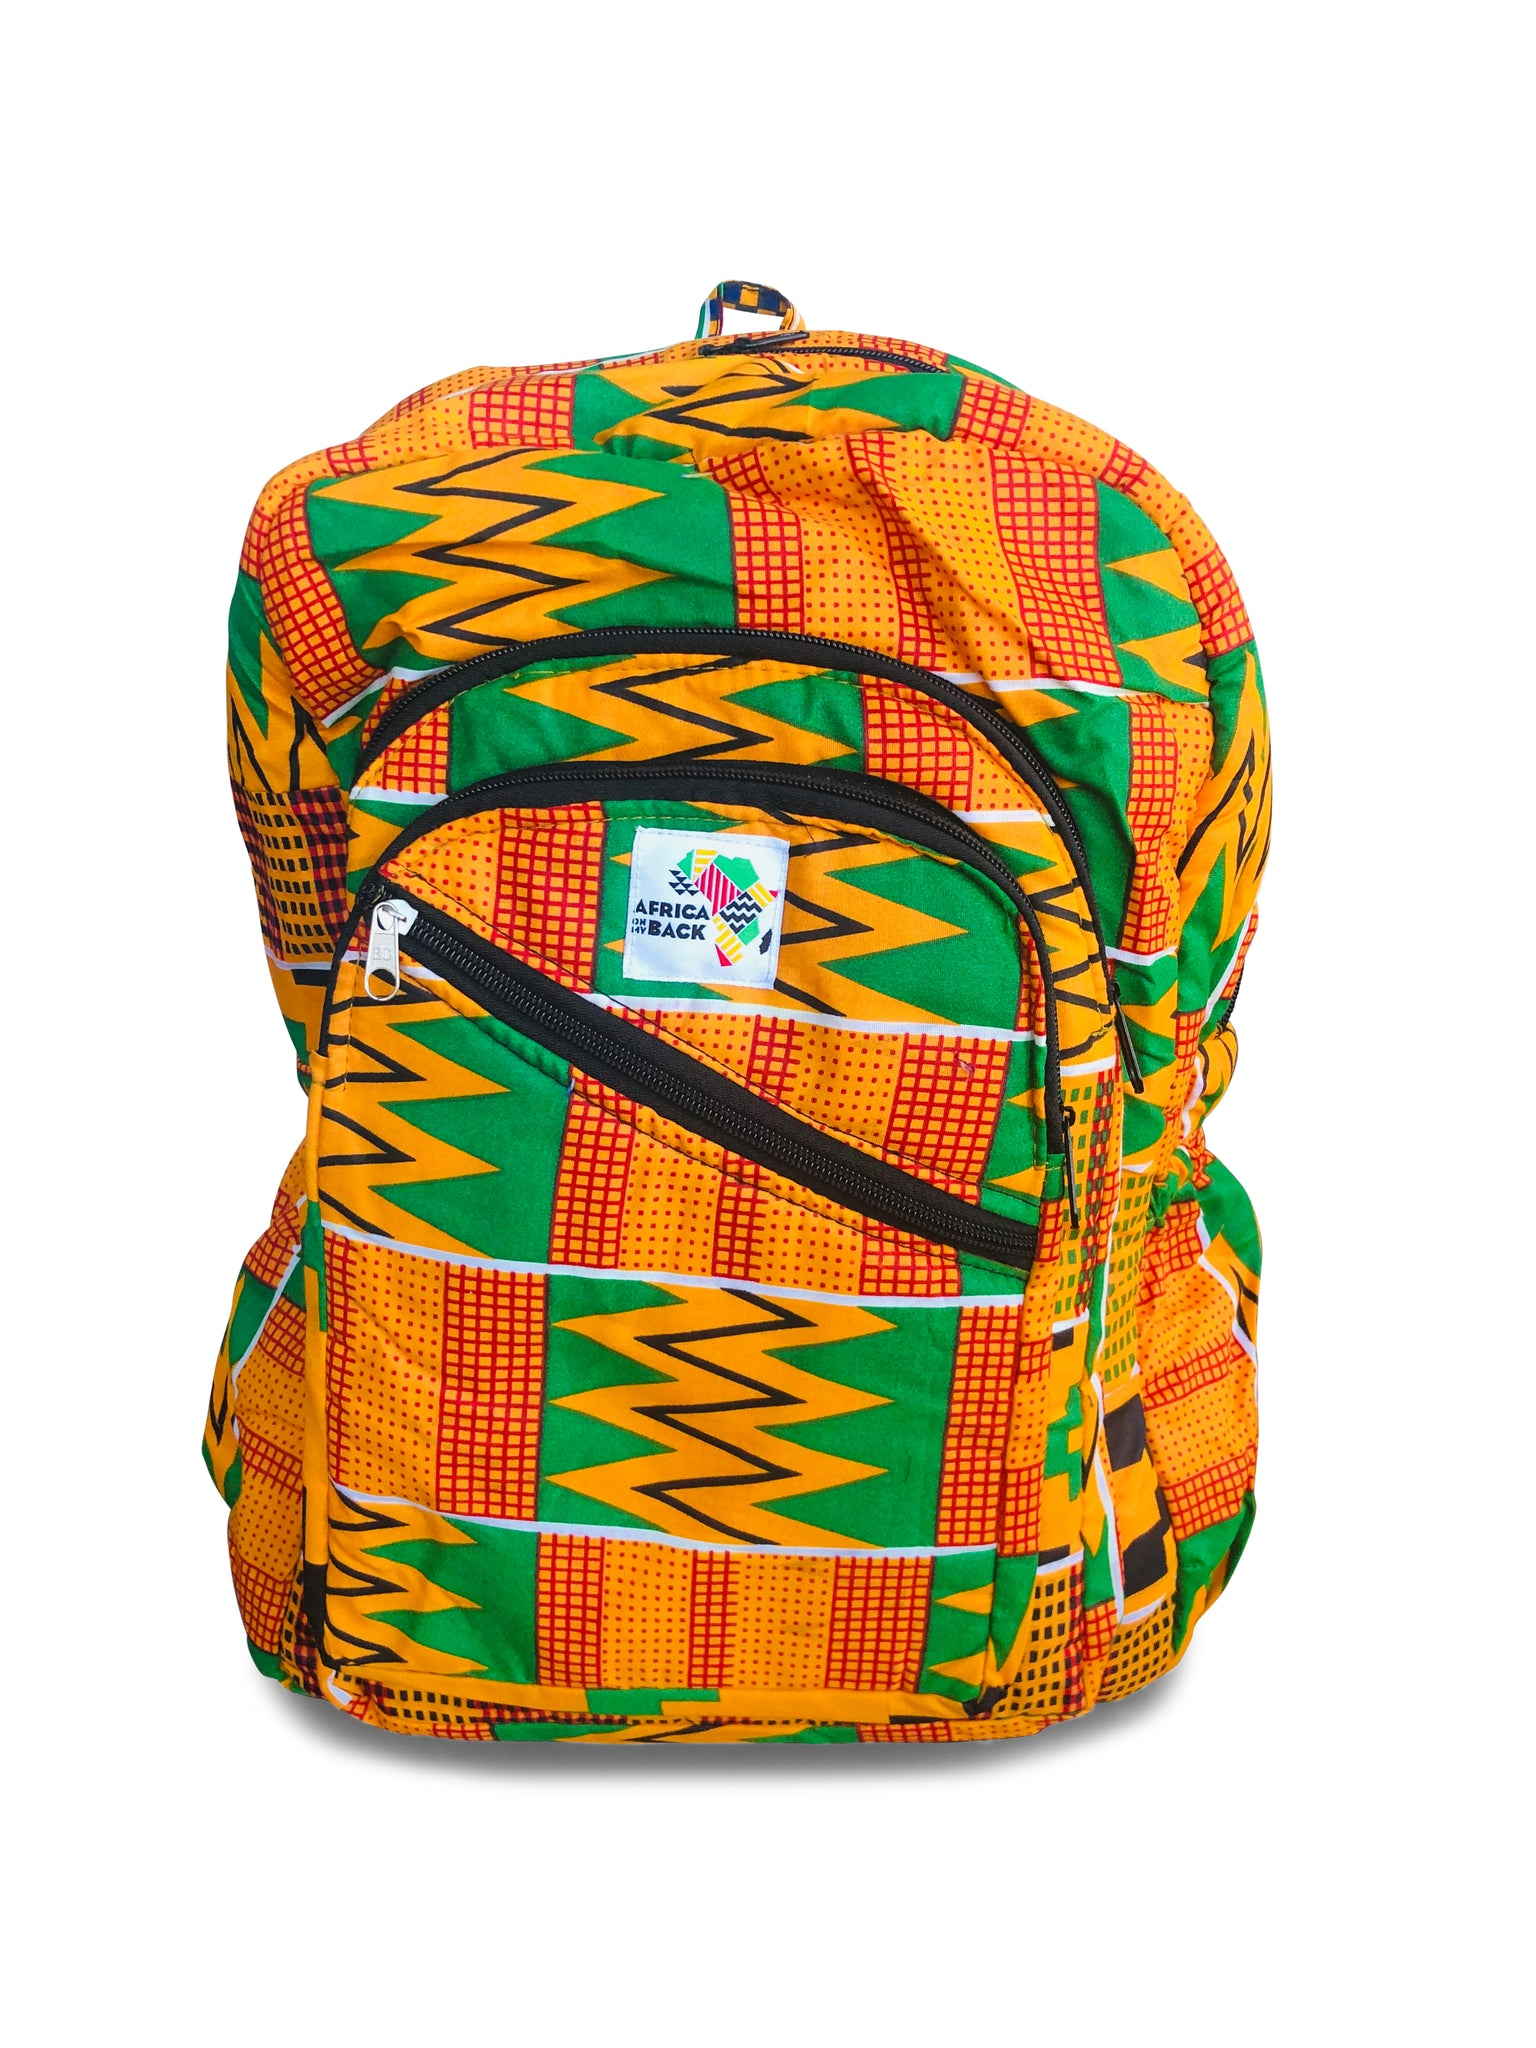 Queen Mother Mid Size Backpack